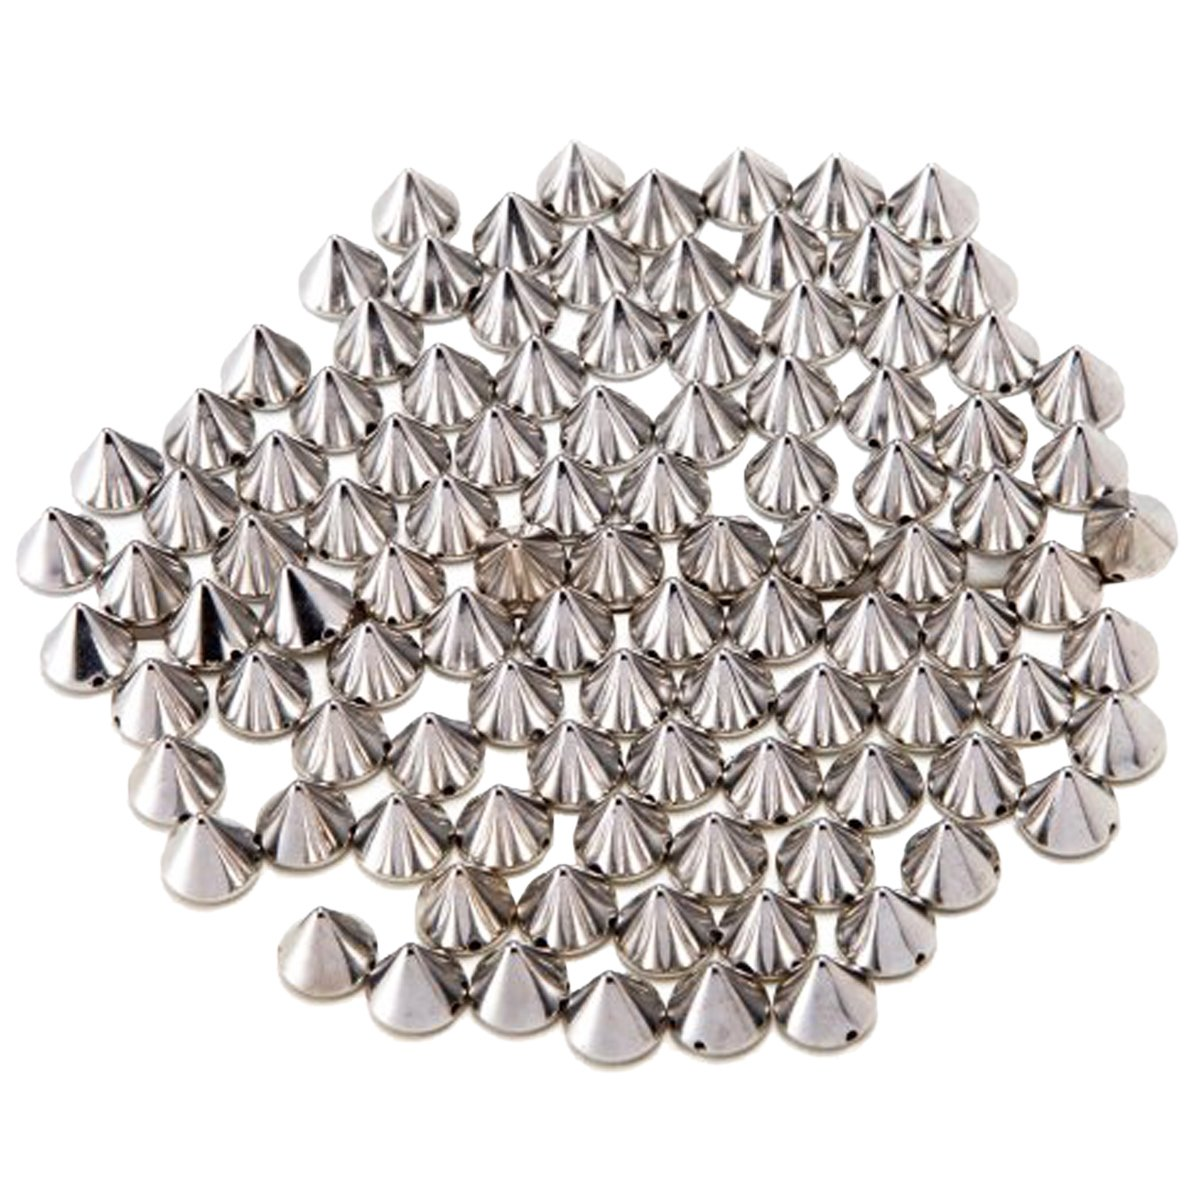 Paradise Kiss Approx 100pcs 10mm Silver Acrylic Bullet Spike Cone Studs, Beads, Sew On, Glue On, Stick On, DIY Garments, Bags & Shoes Embellishment Paradise Kiss CO.LTD